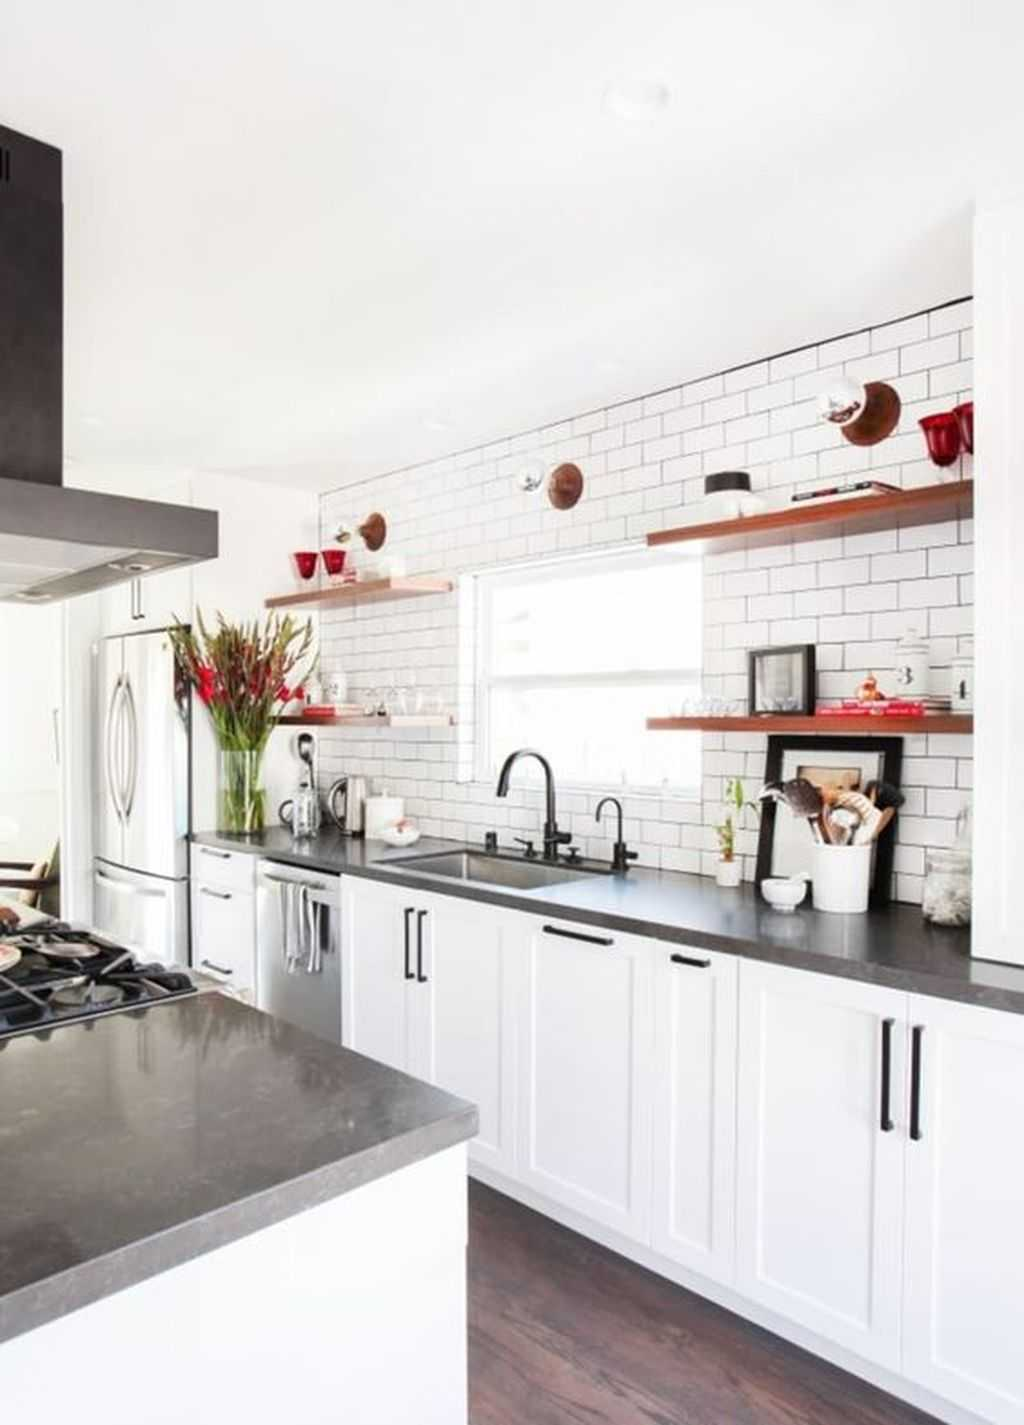 A Bright Kitchen With Sleek Wooden Cabinets